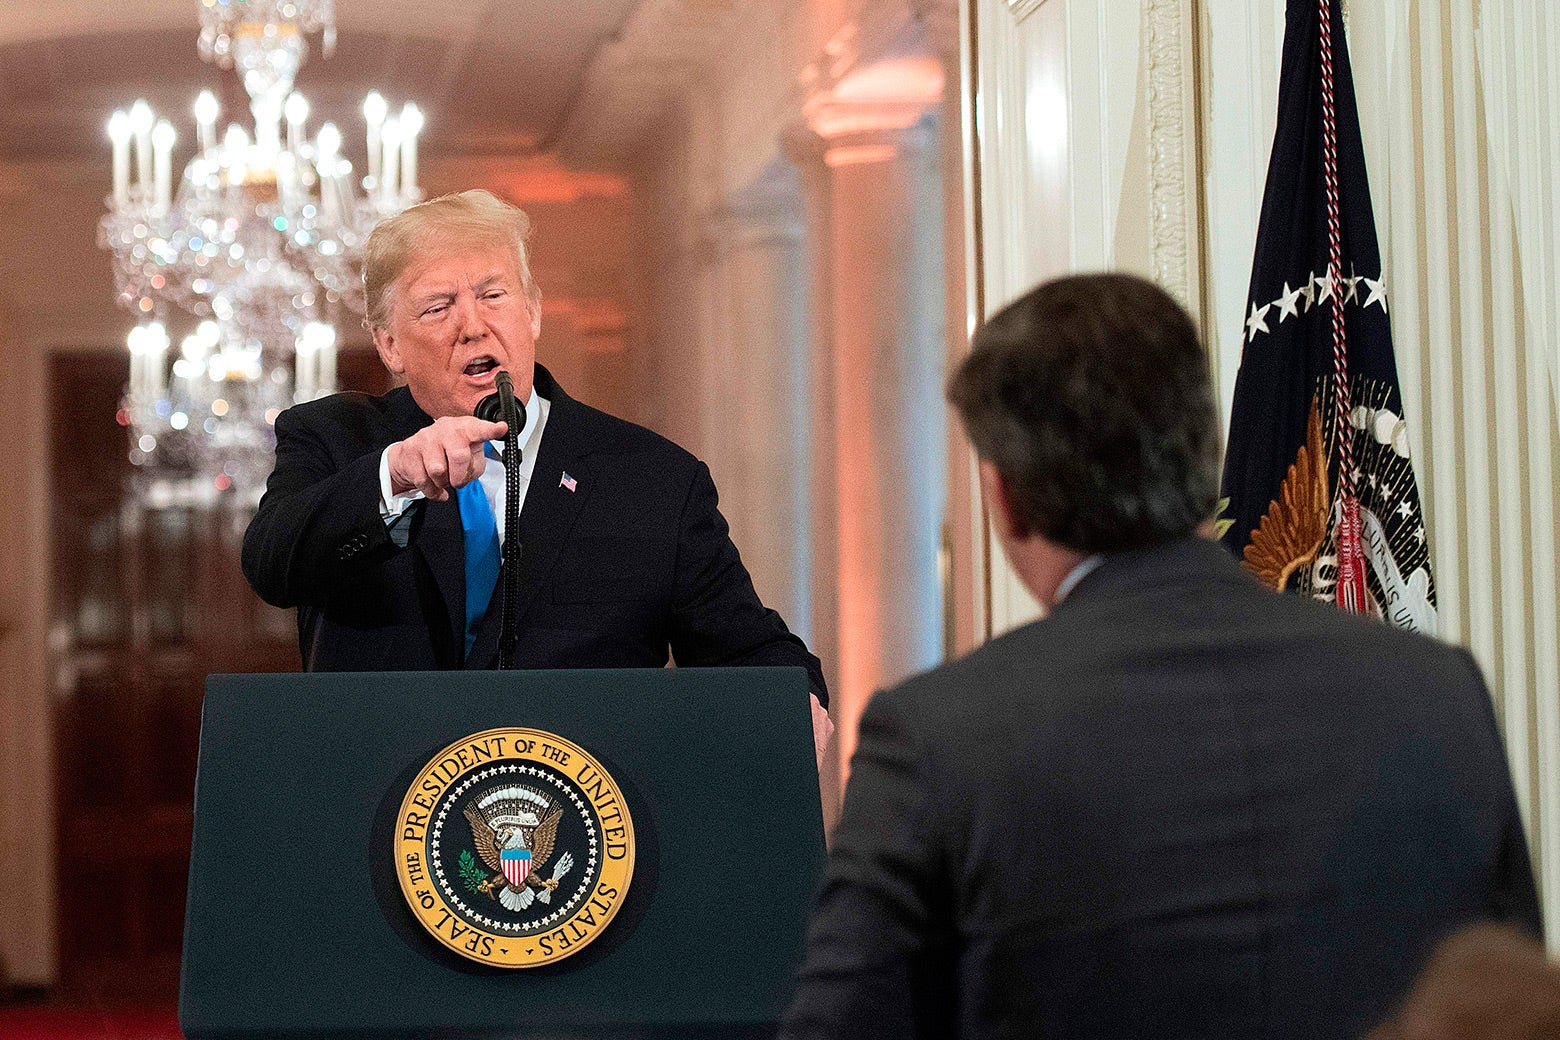 Donald Trump points angrily during a heated exchange with CNN chief White House correspondent Jim Acosta during a post-election press conference on Nov. 7.